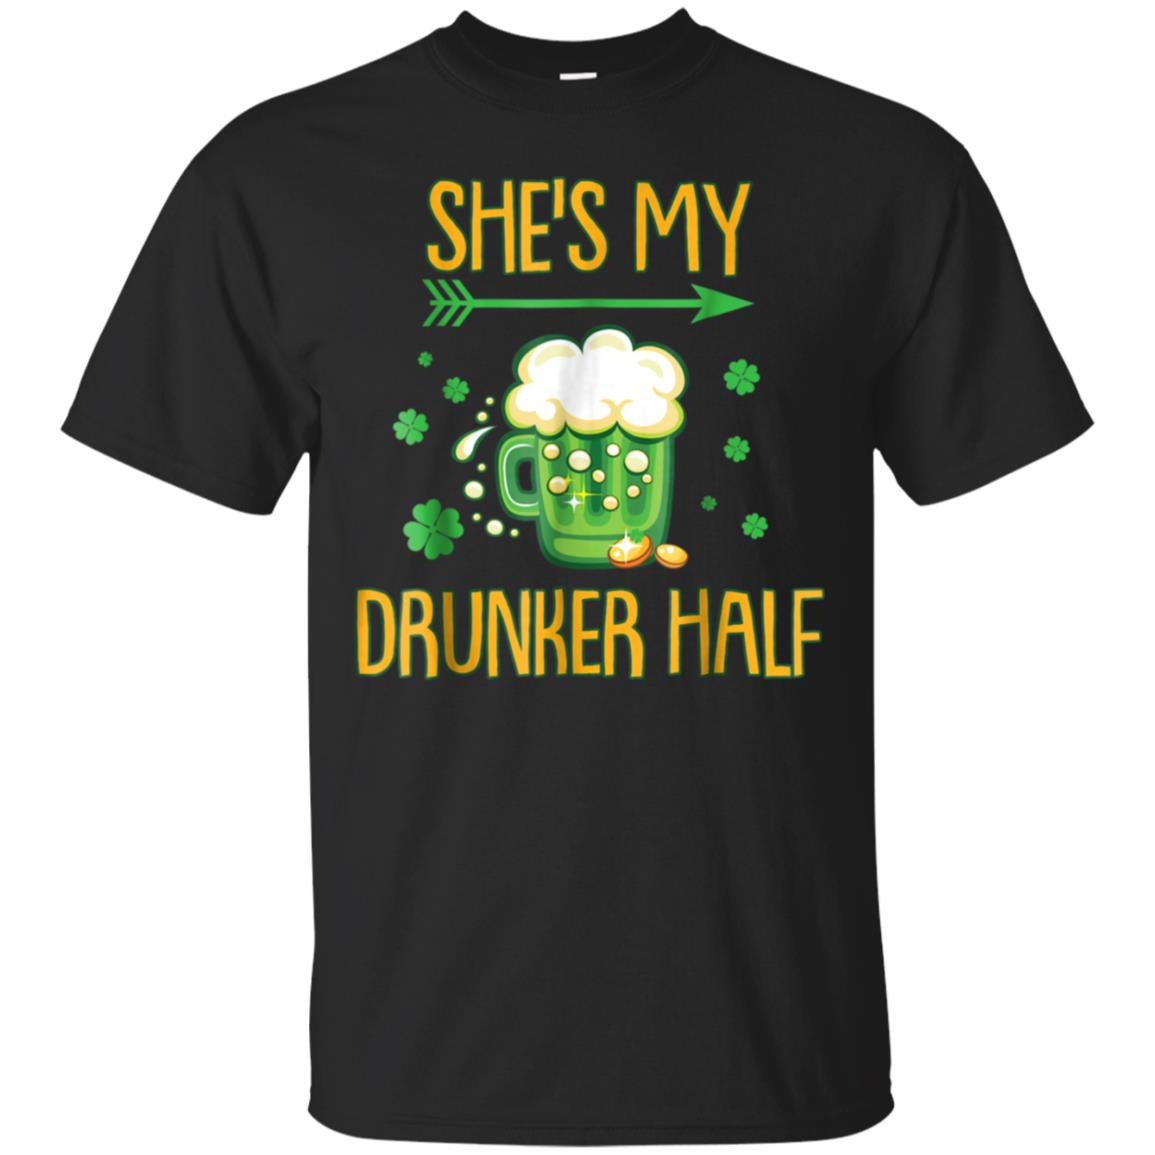 Mens Funny St Patricks Day T Shirt She's My Drunker Half 99promocode